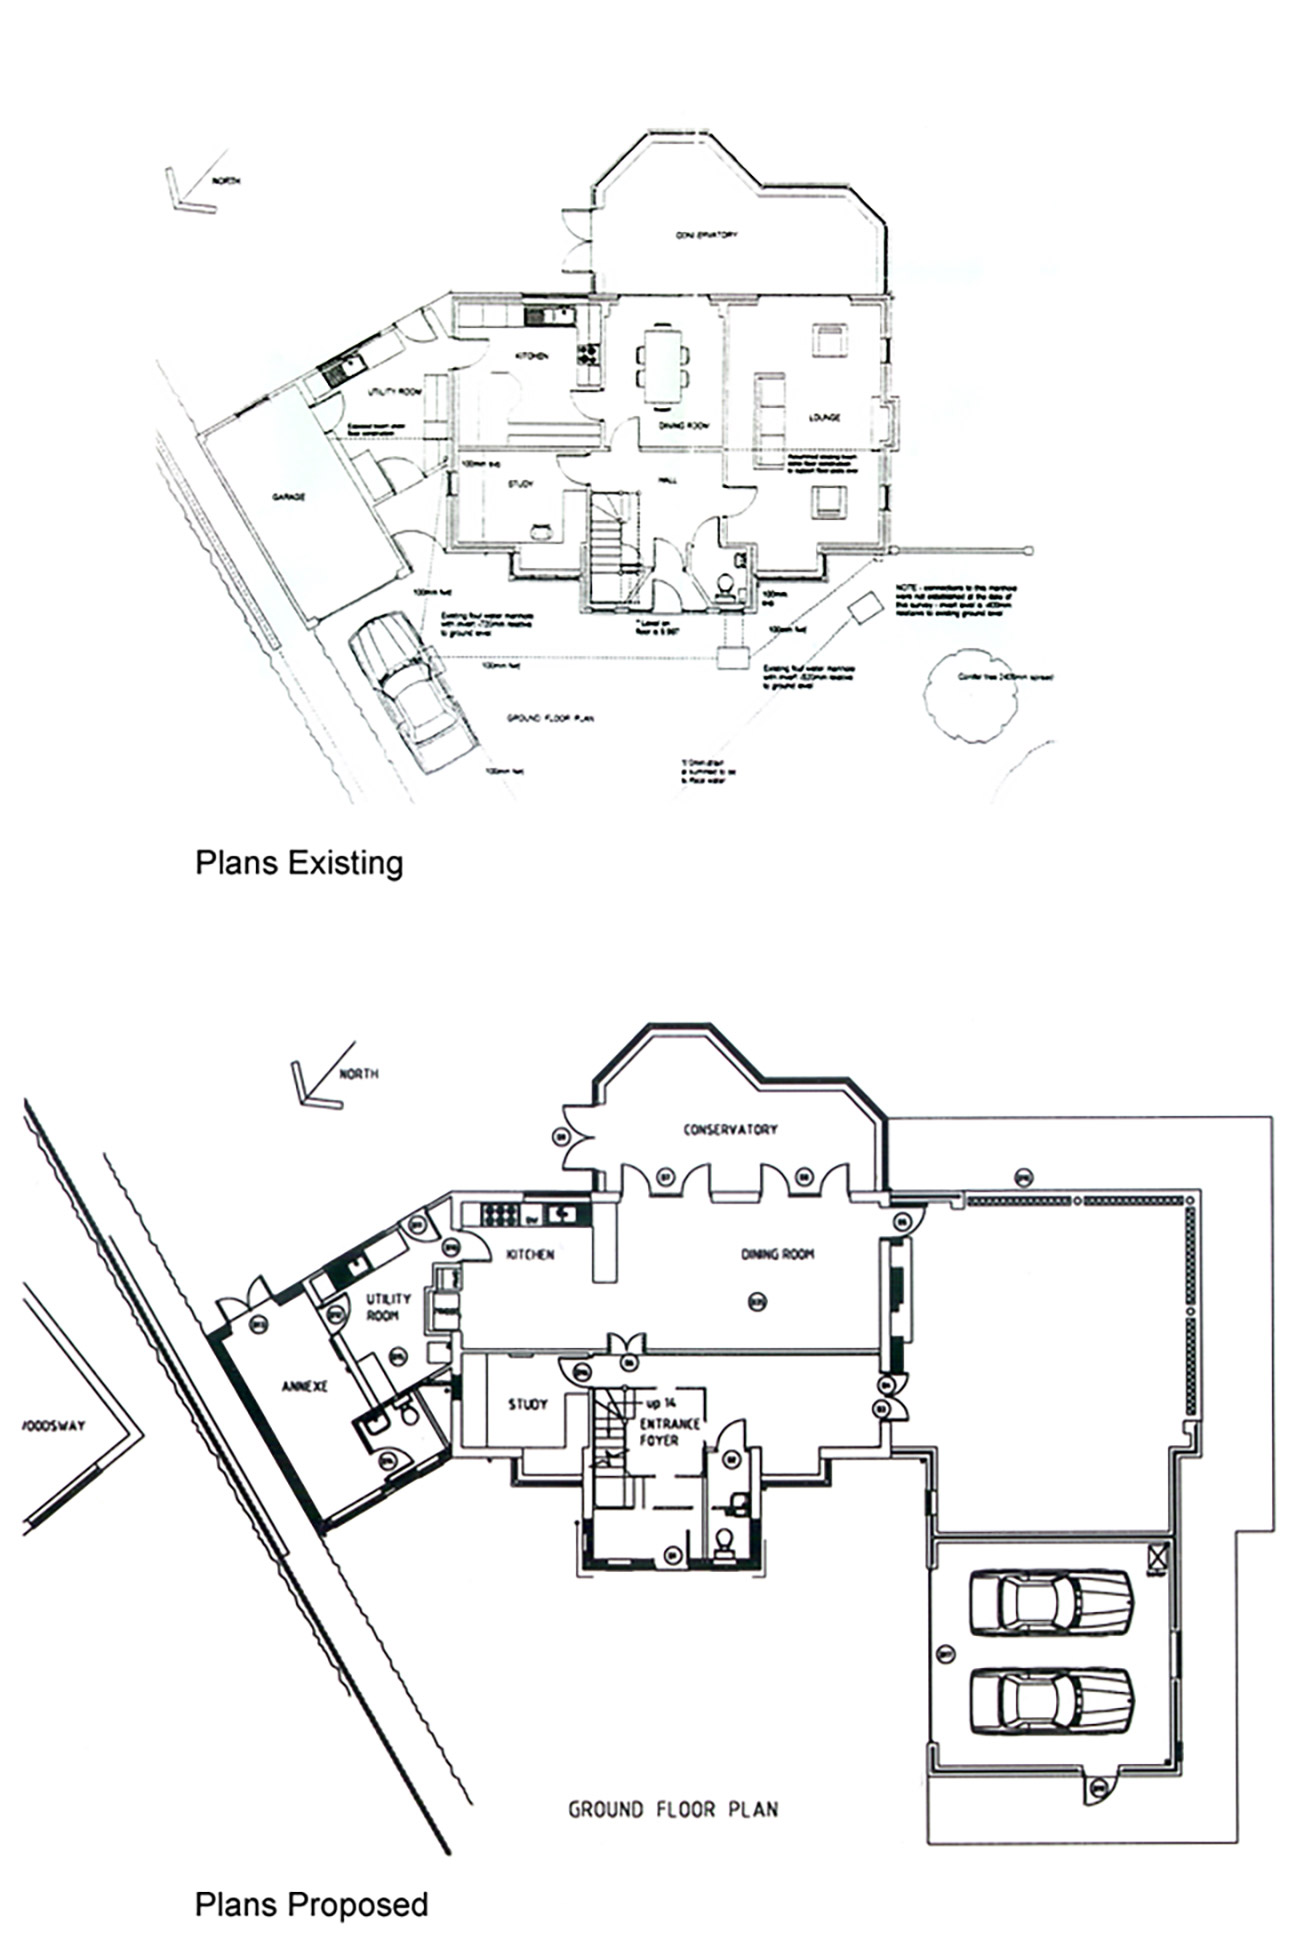 Floor plan for Oxshot Housing development